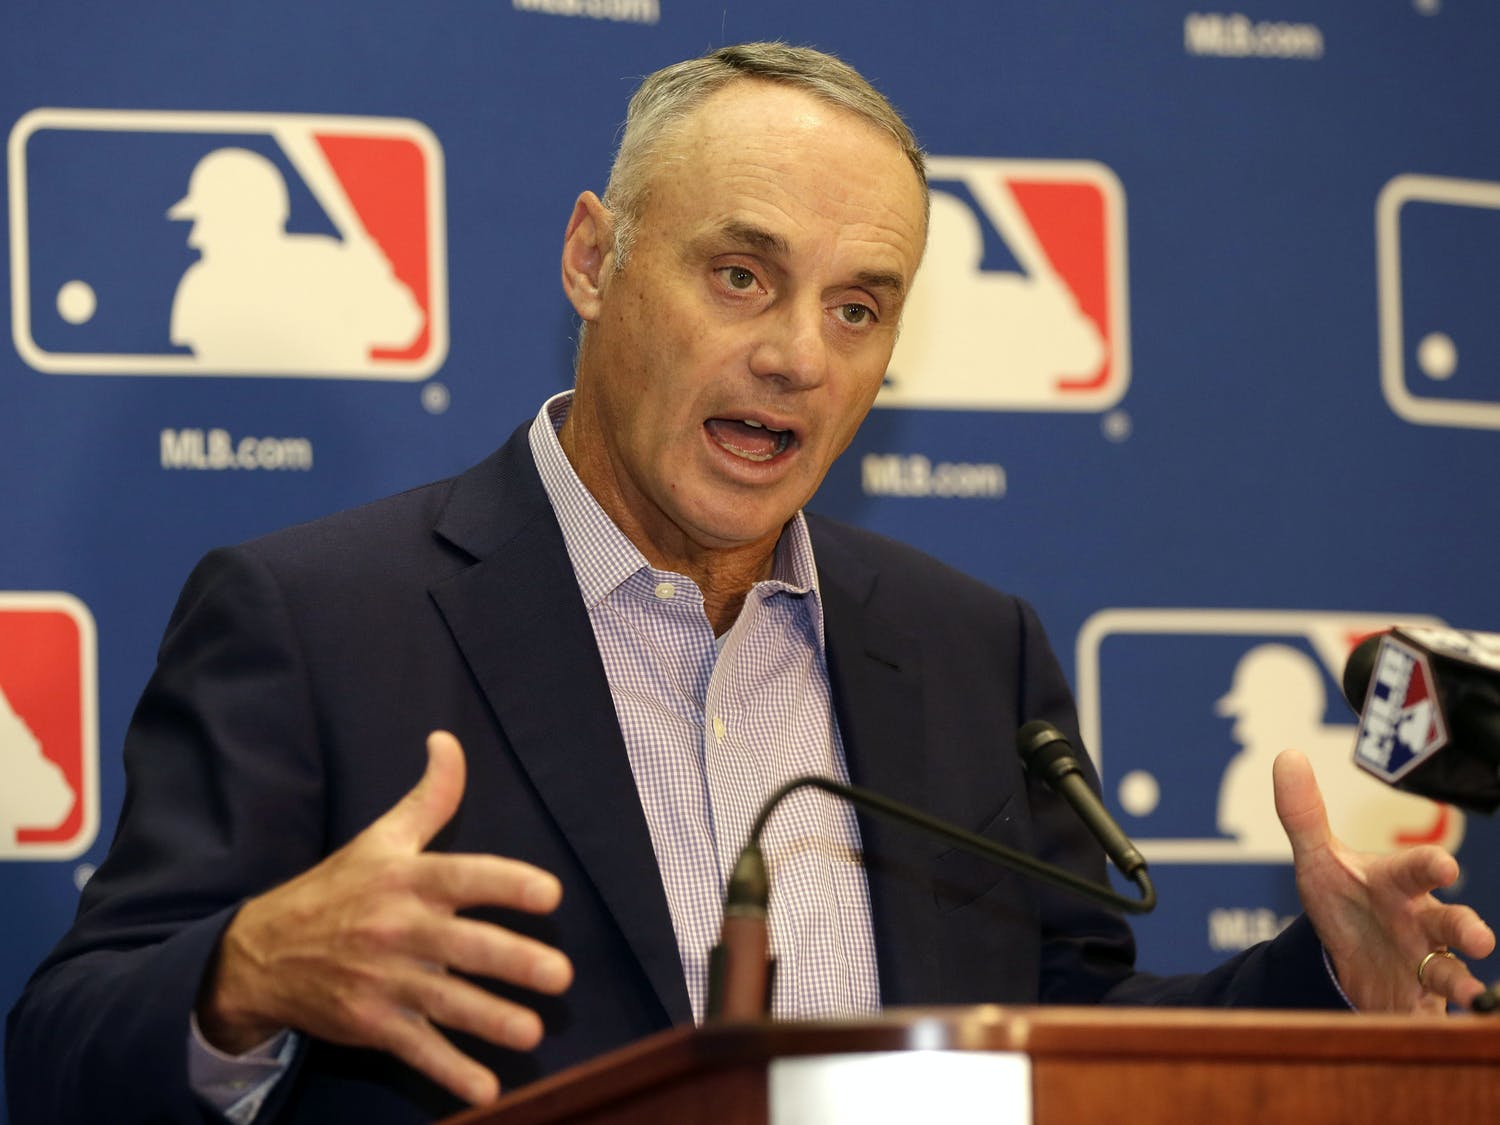 Major League Baseball Commissioner Rob Manfred speaks during a news conference following a meeting with MLB owners, Friday, Feb. 3, 2017, in Palm Beach, Fla. (AP Photo/Lynne Sladky)